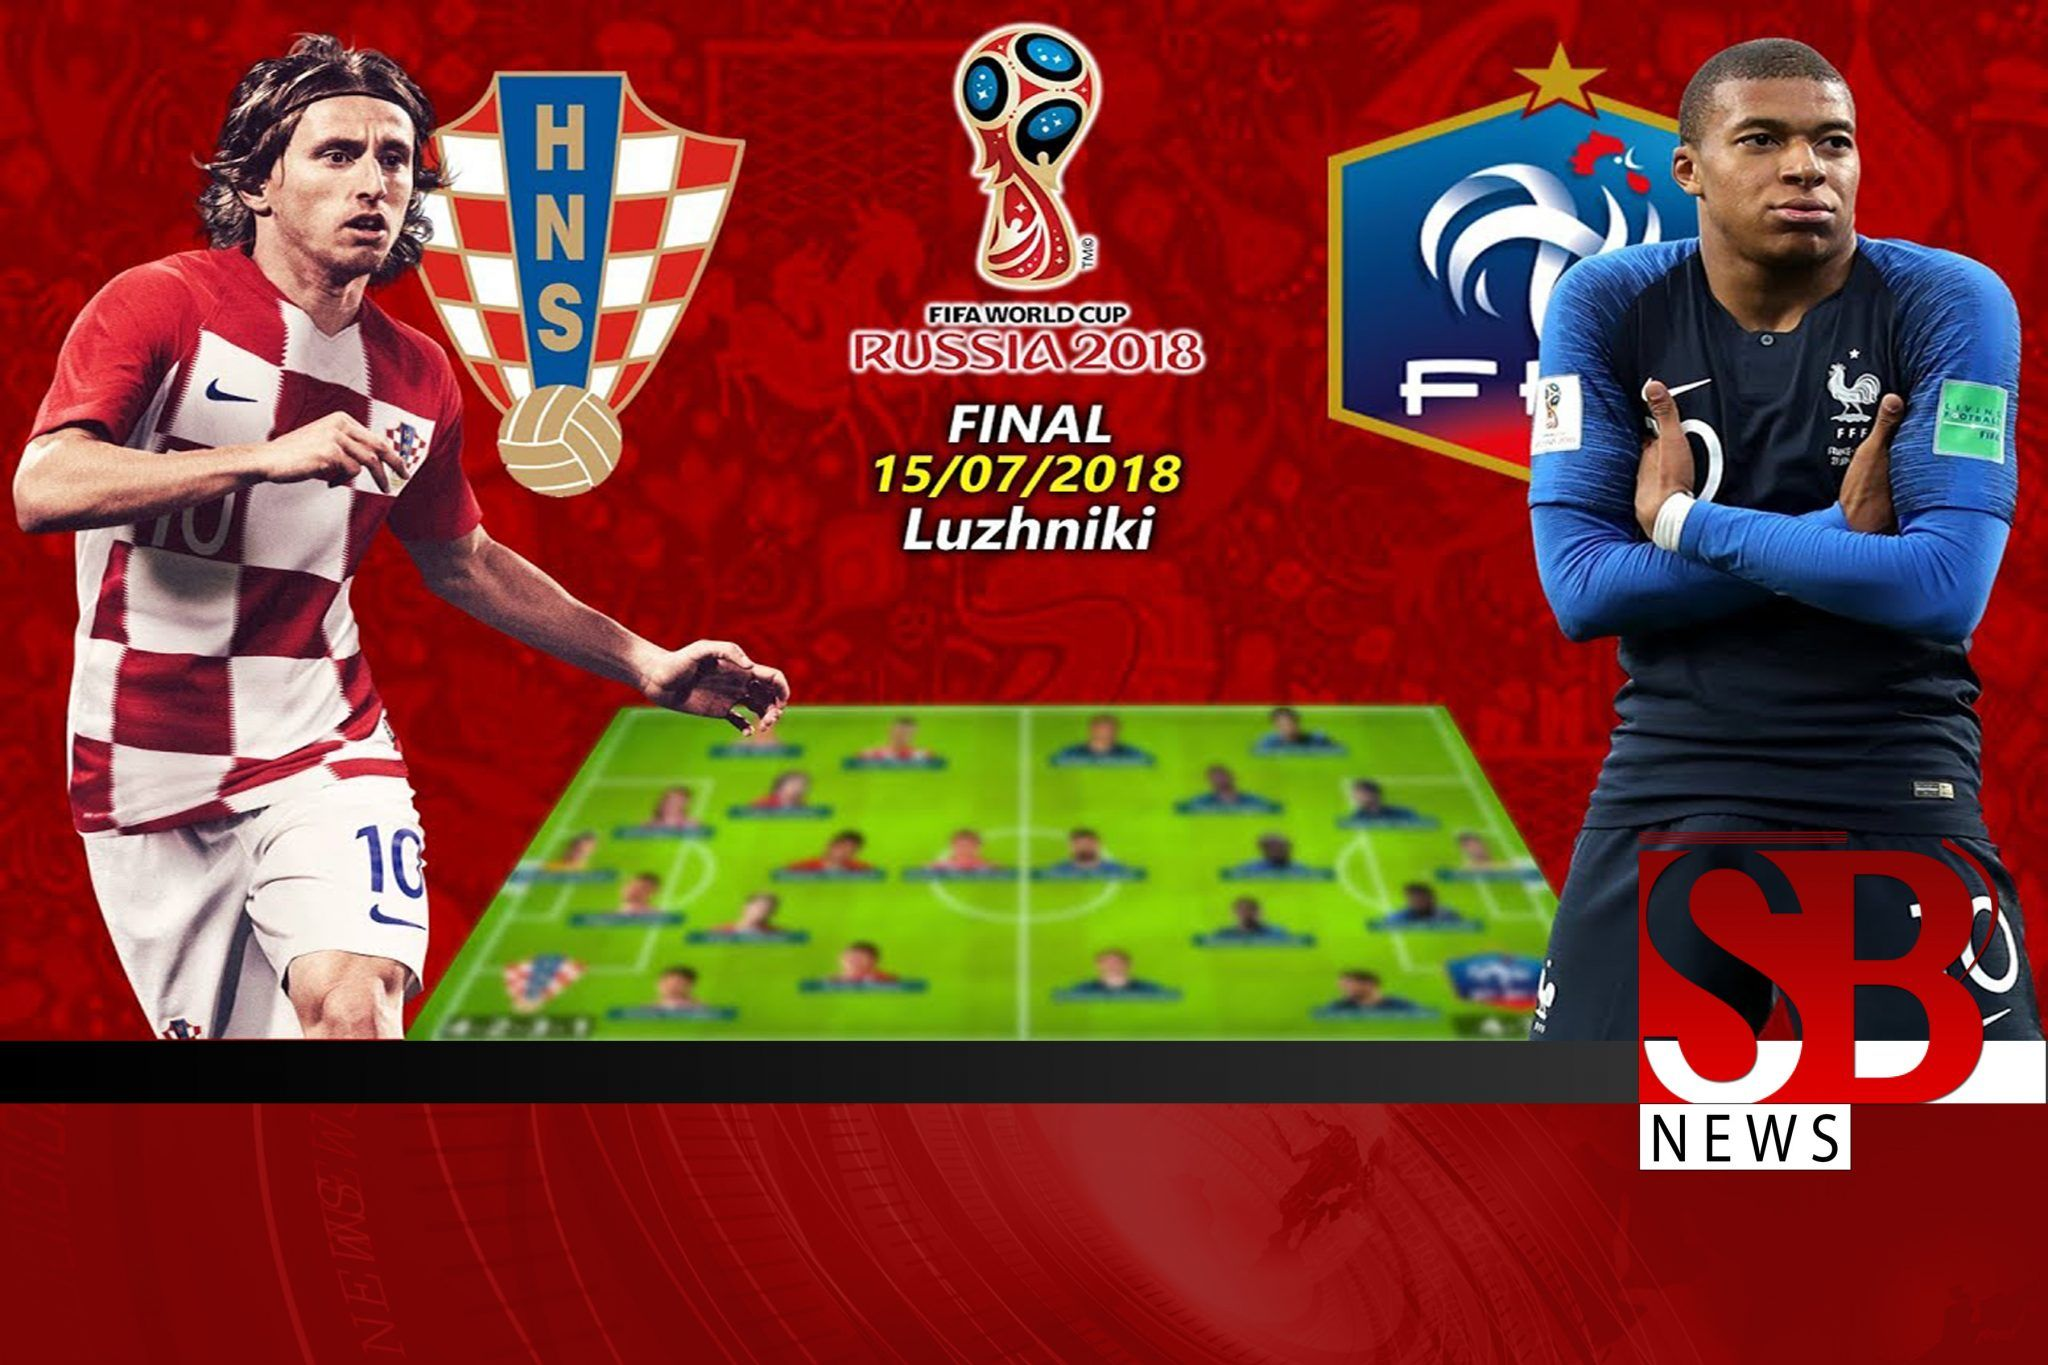 France Won Fifa Worldcup Final All Exciting Match With Full Of Energy Suchibaat World Cup Final World Cup 2018 World Cup